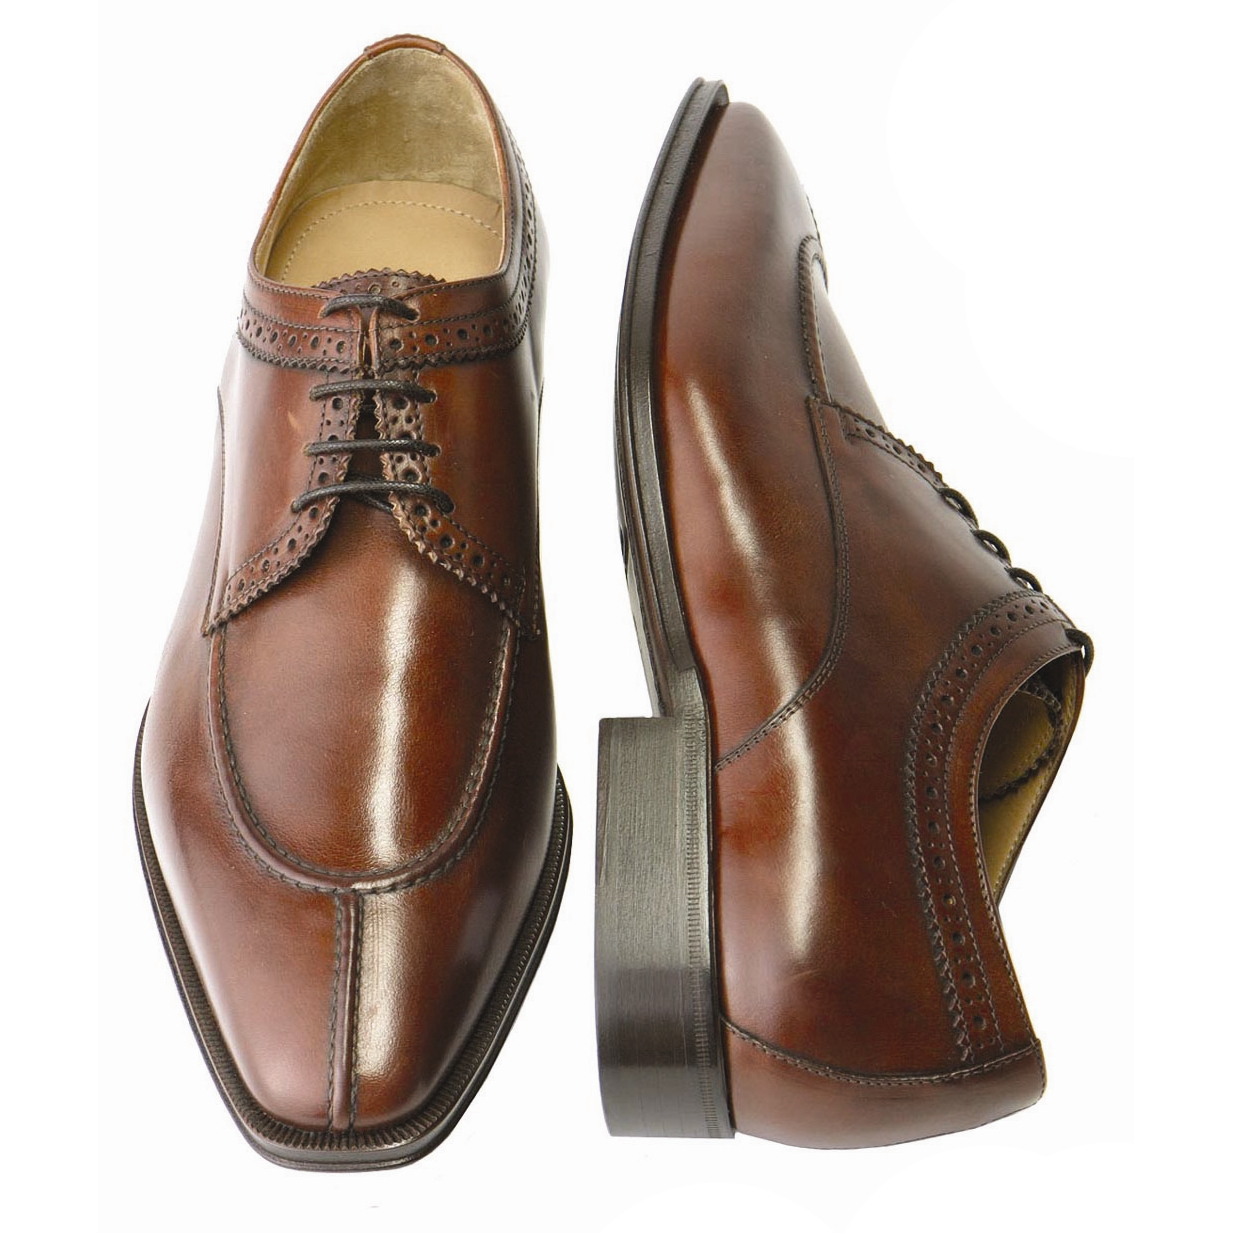 Shoes online. Shoes for mens